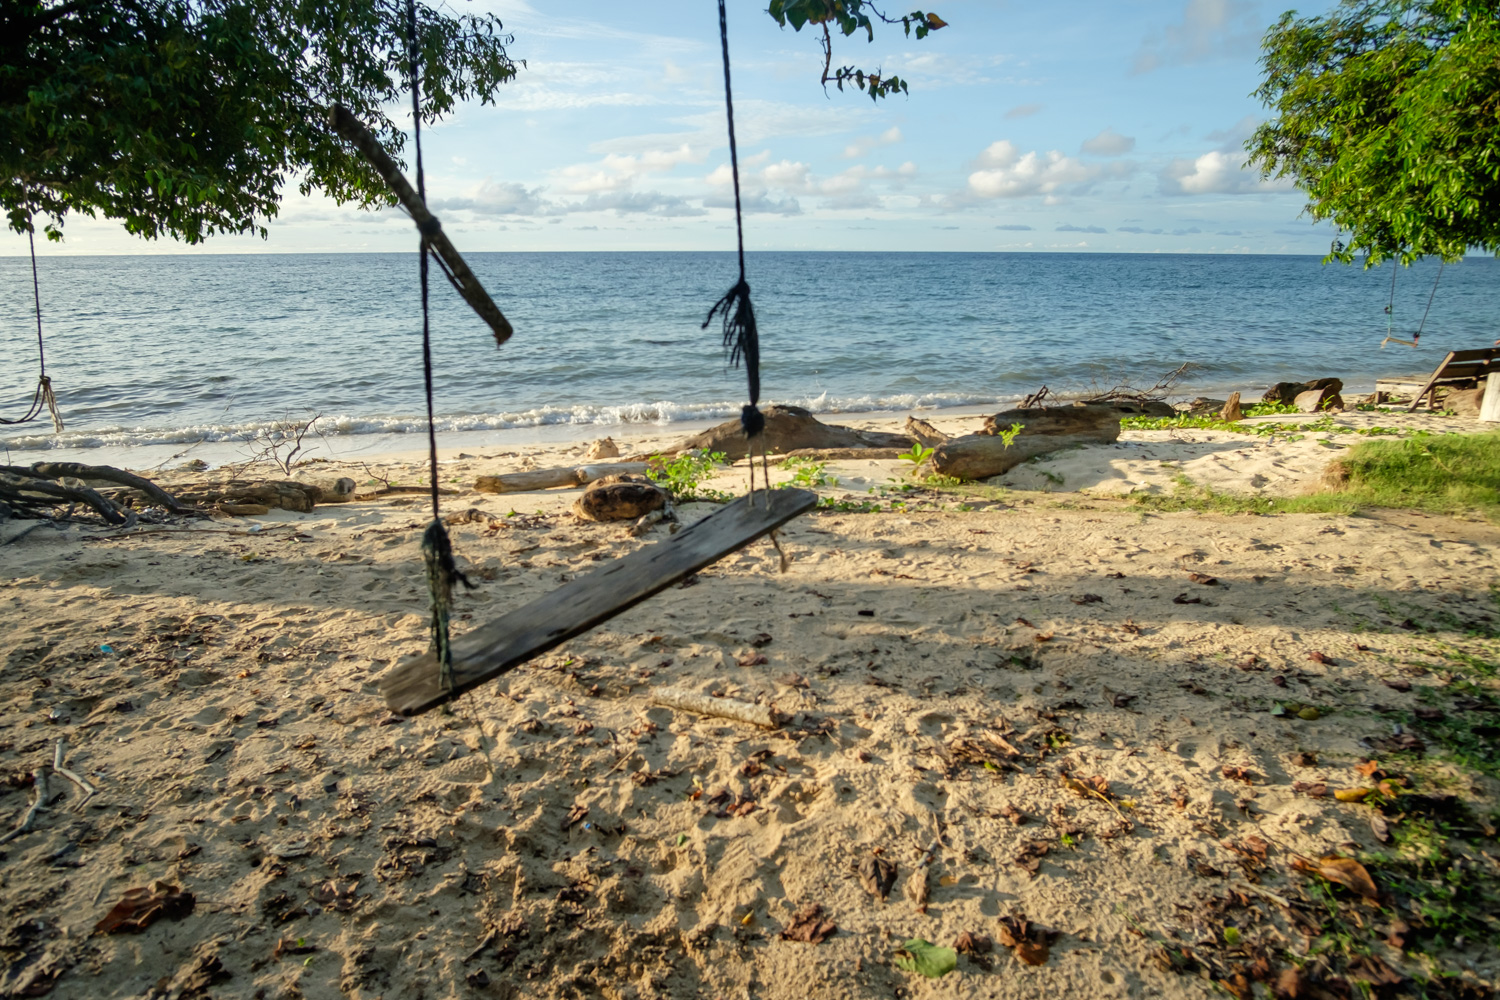 beach_small_Tanjung_karang-1